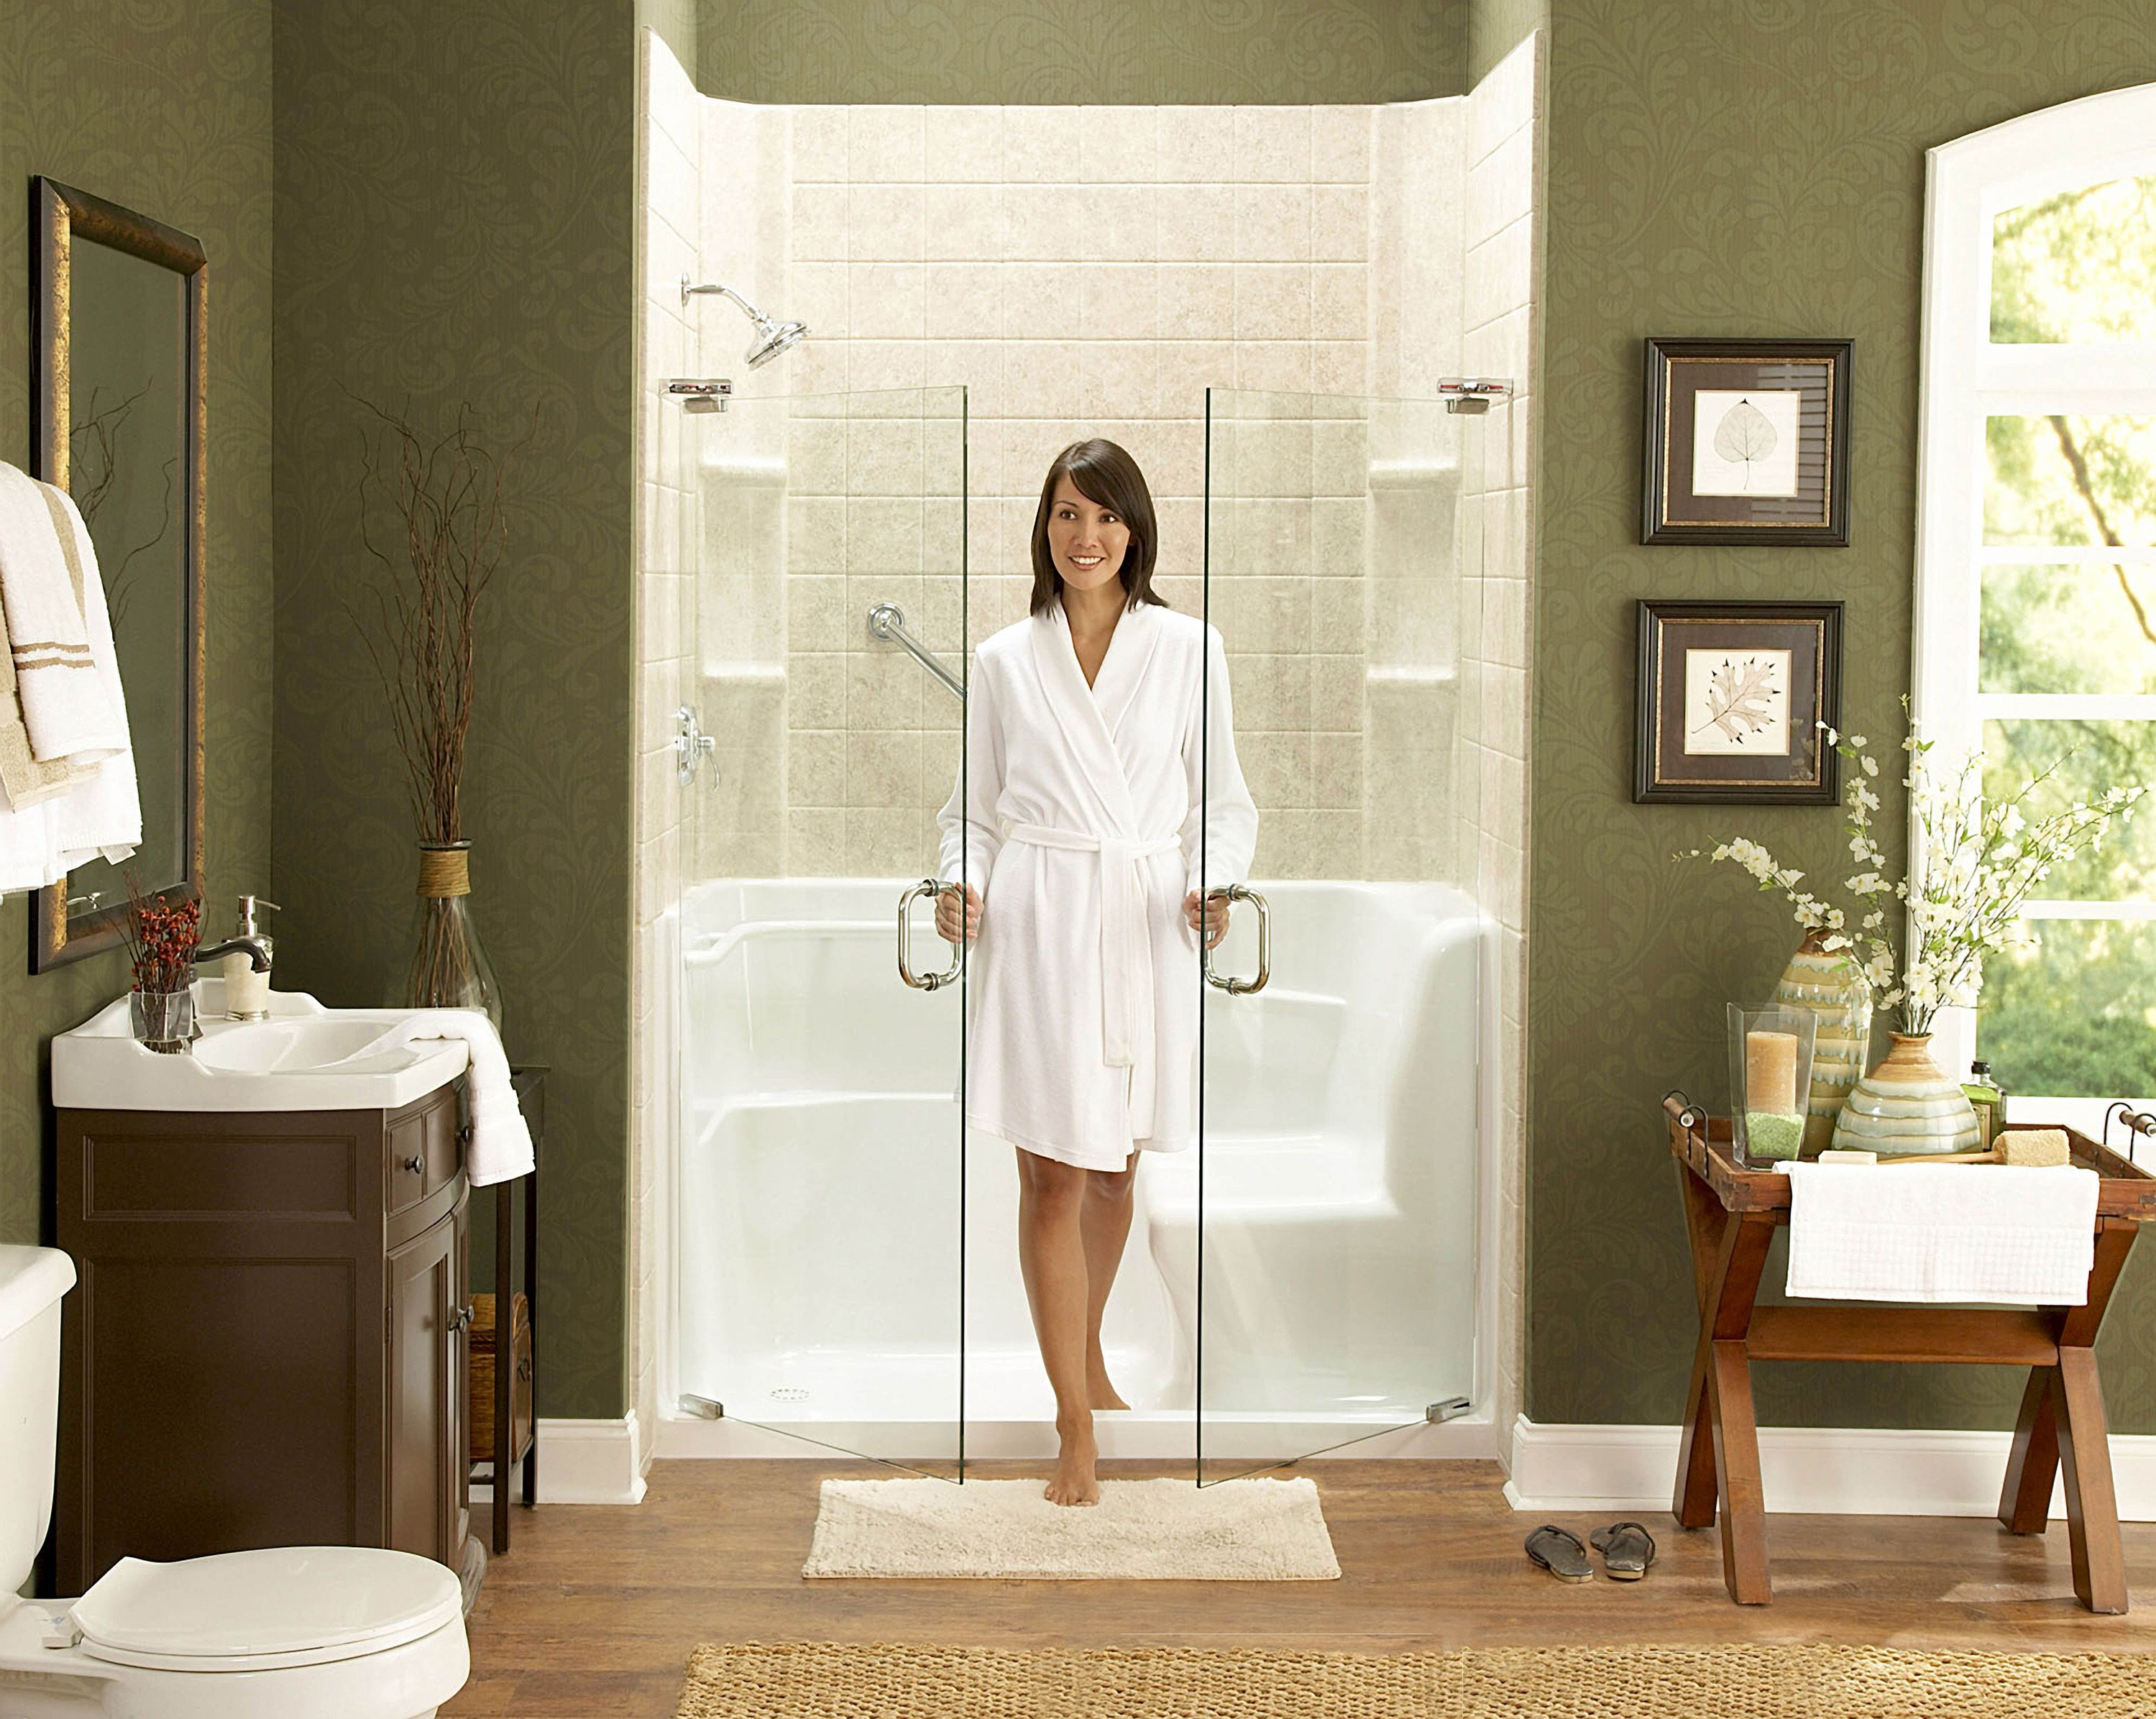 Convert Your Tub Into An Easy Entry Shower | Bath tubs | Pinterest ...